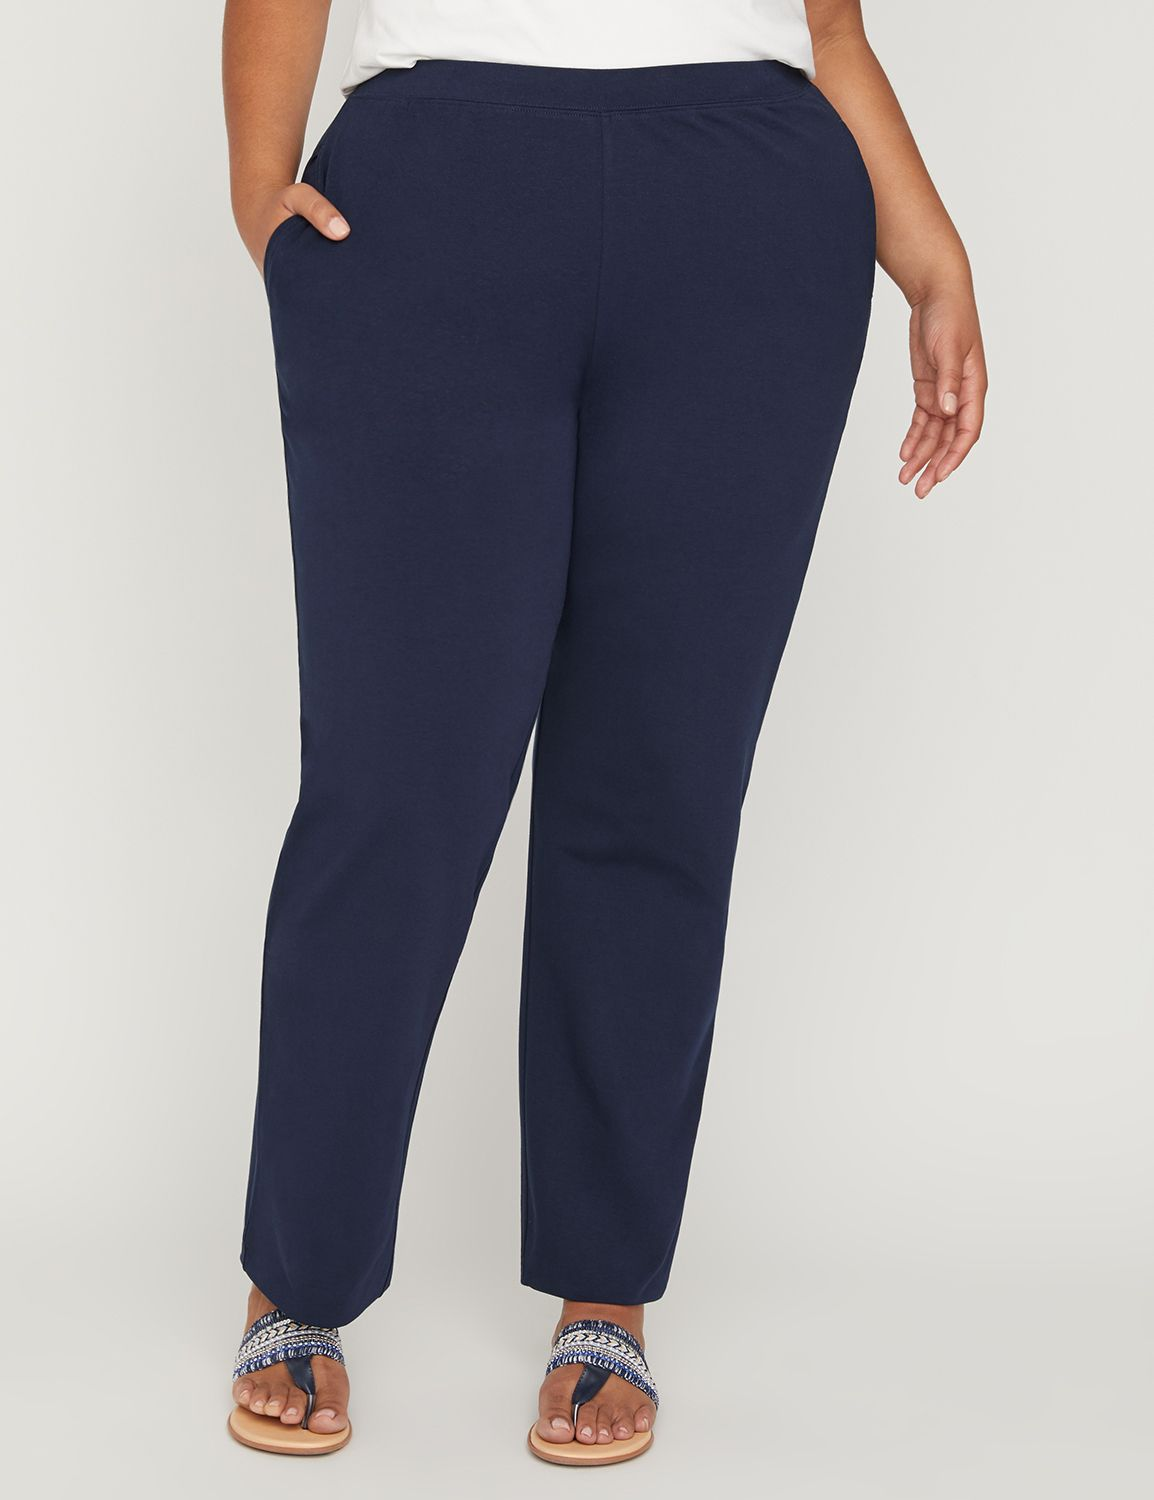 Suprema Knit Pant (Classic Colors) Suprema Knit Pant (Classic Colors) MP-300009644